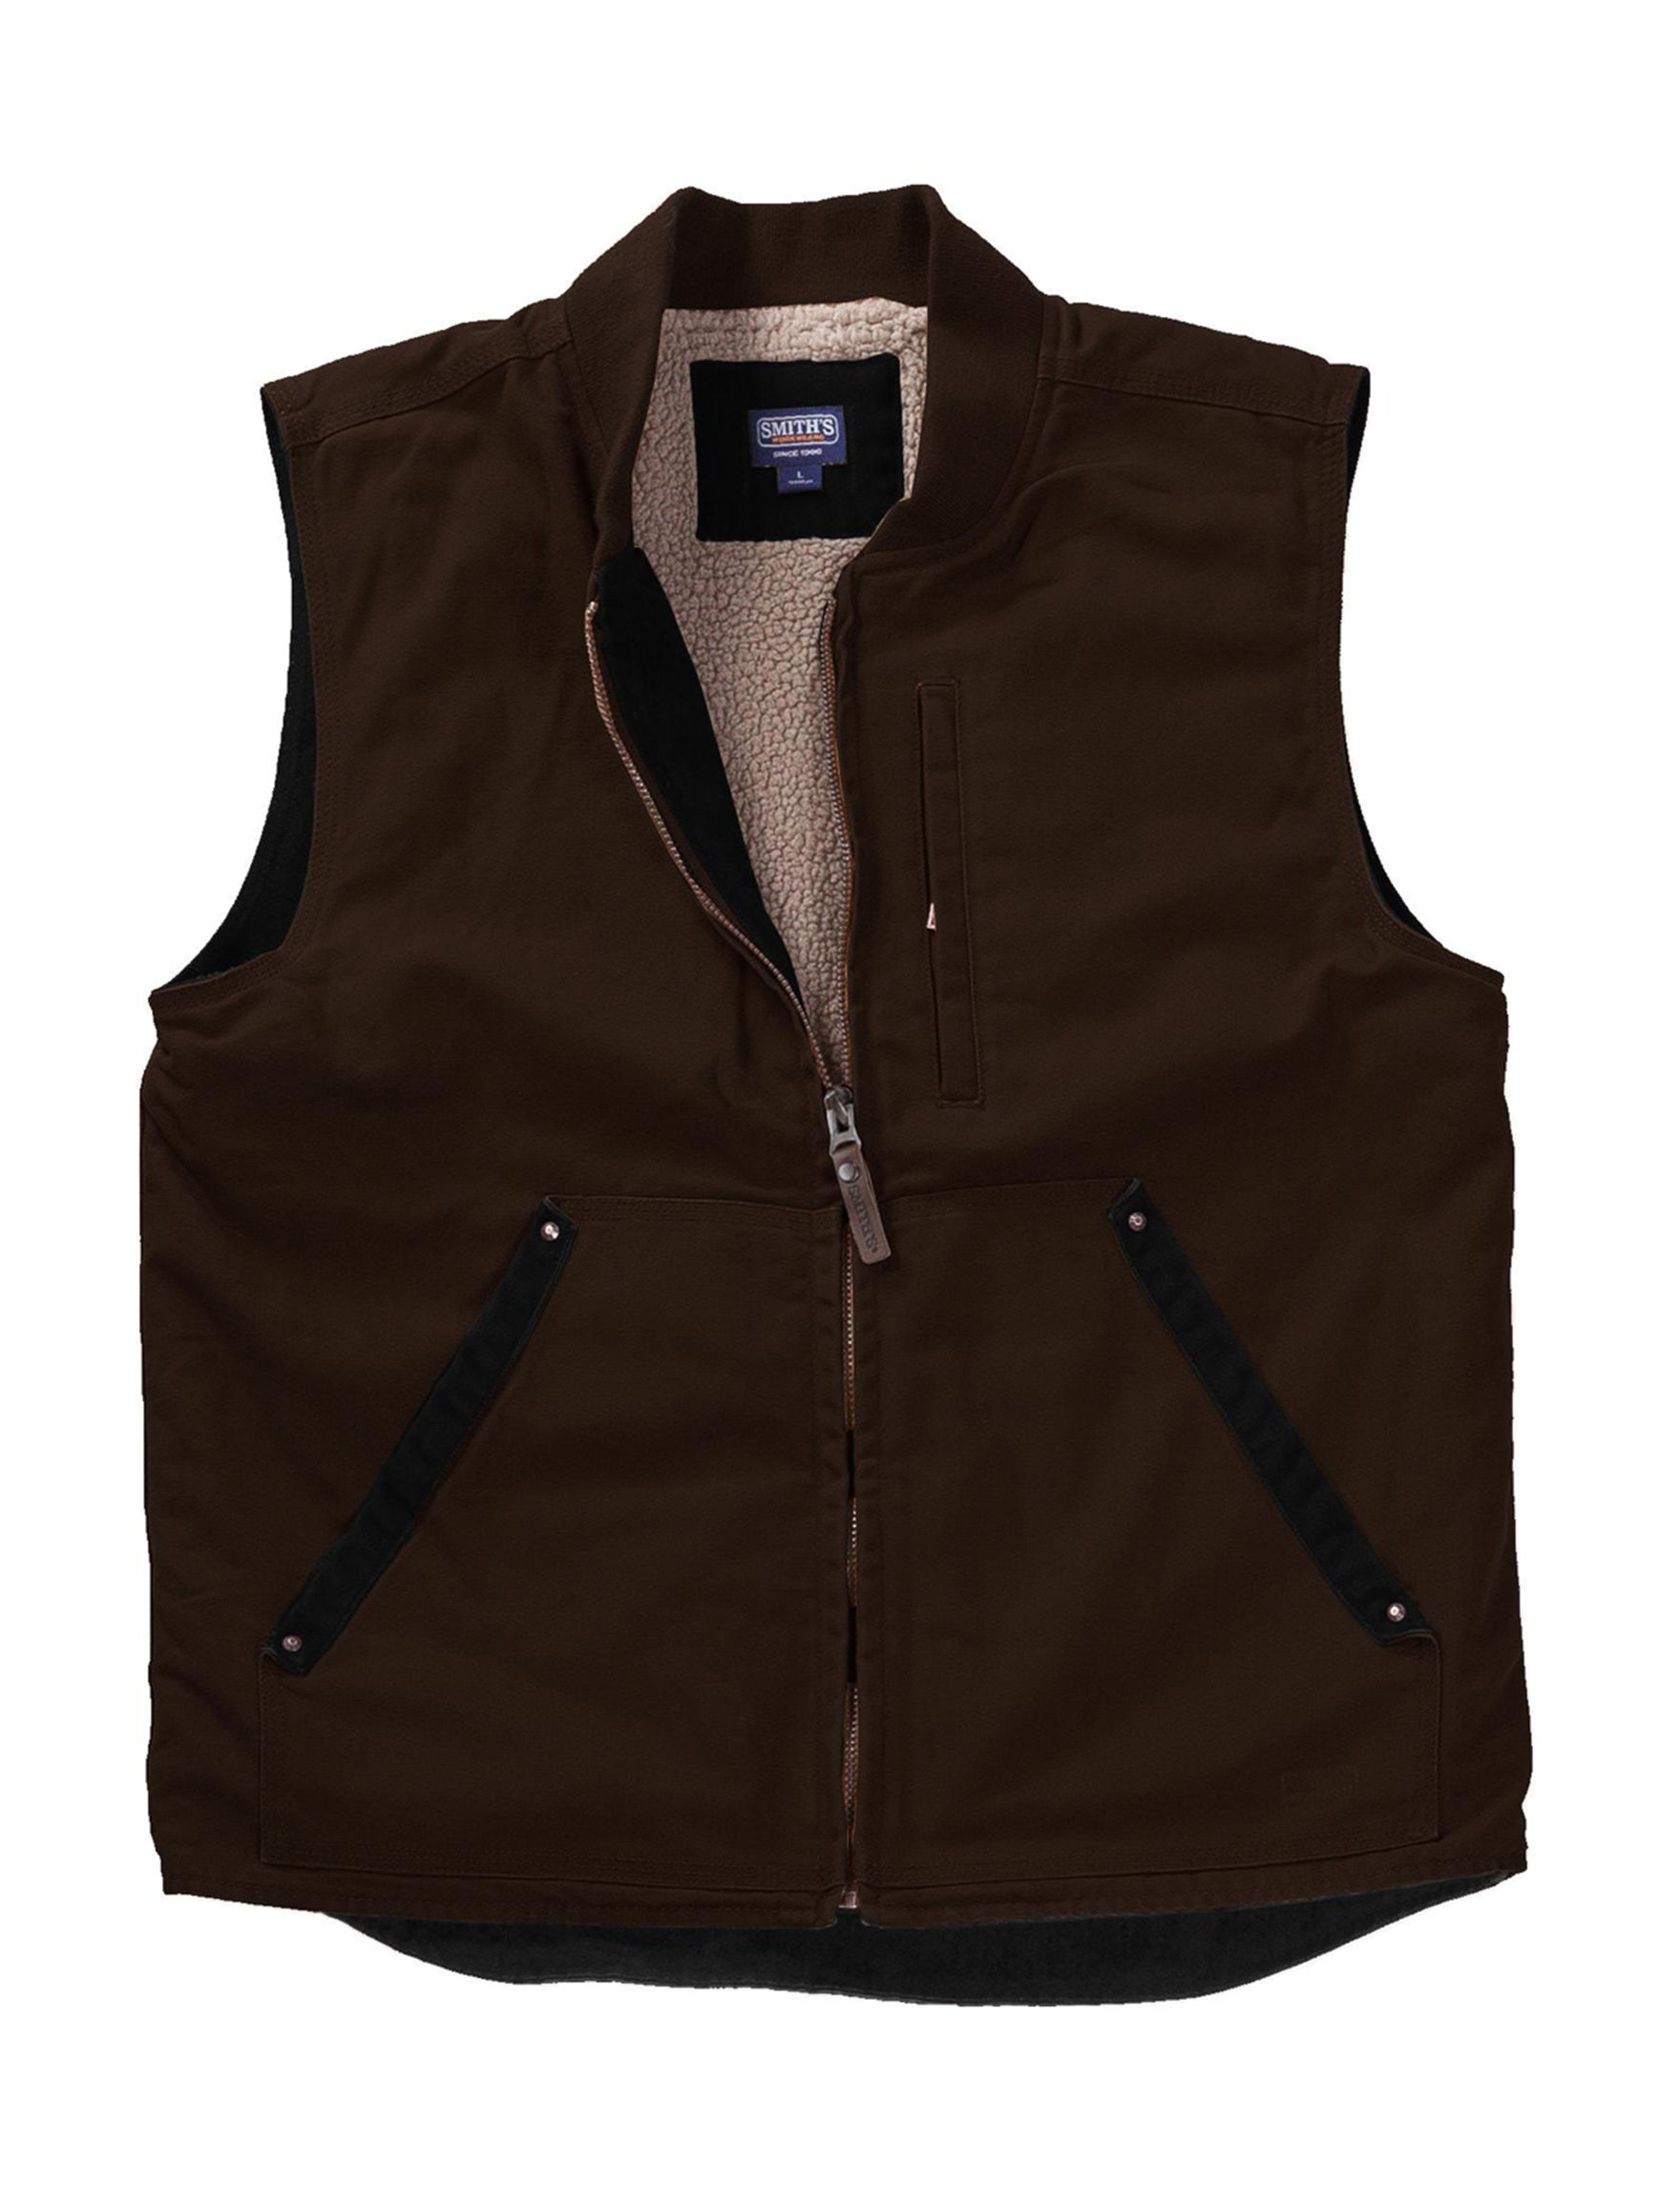 Smith's Workwear Brown Vests